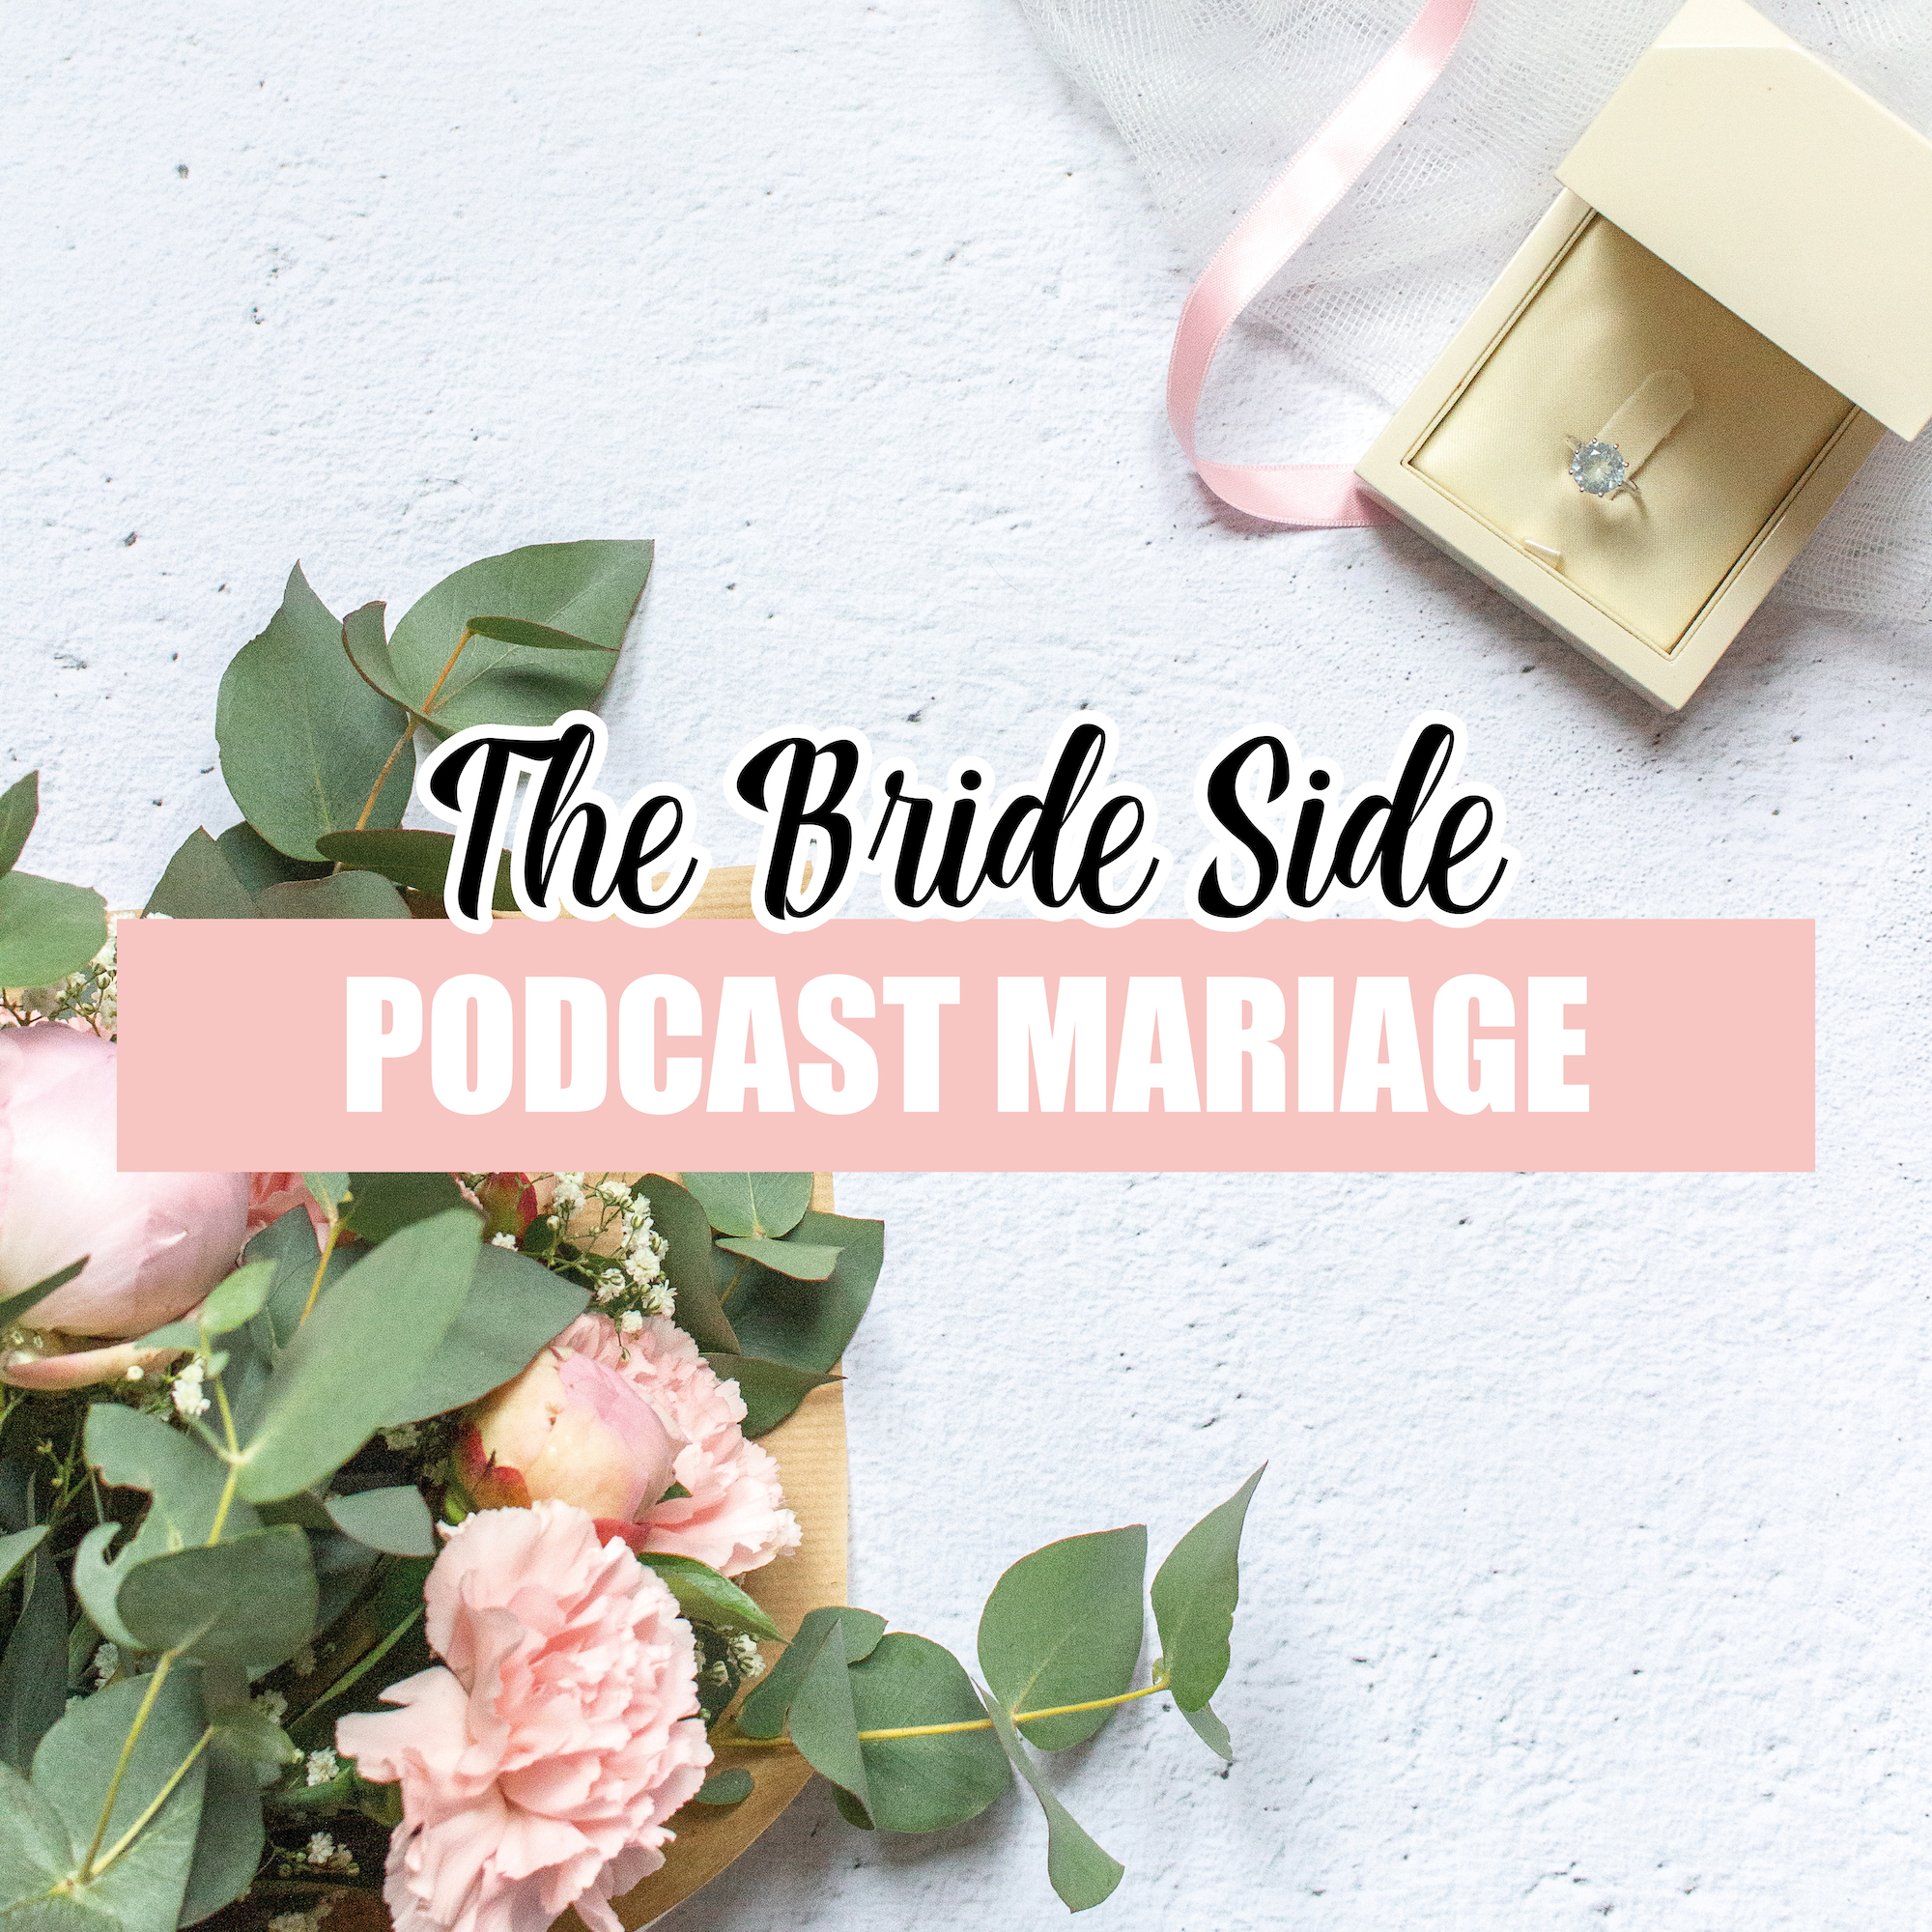 COUVERTURE PODCAST The Bride Side